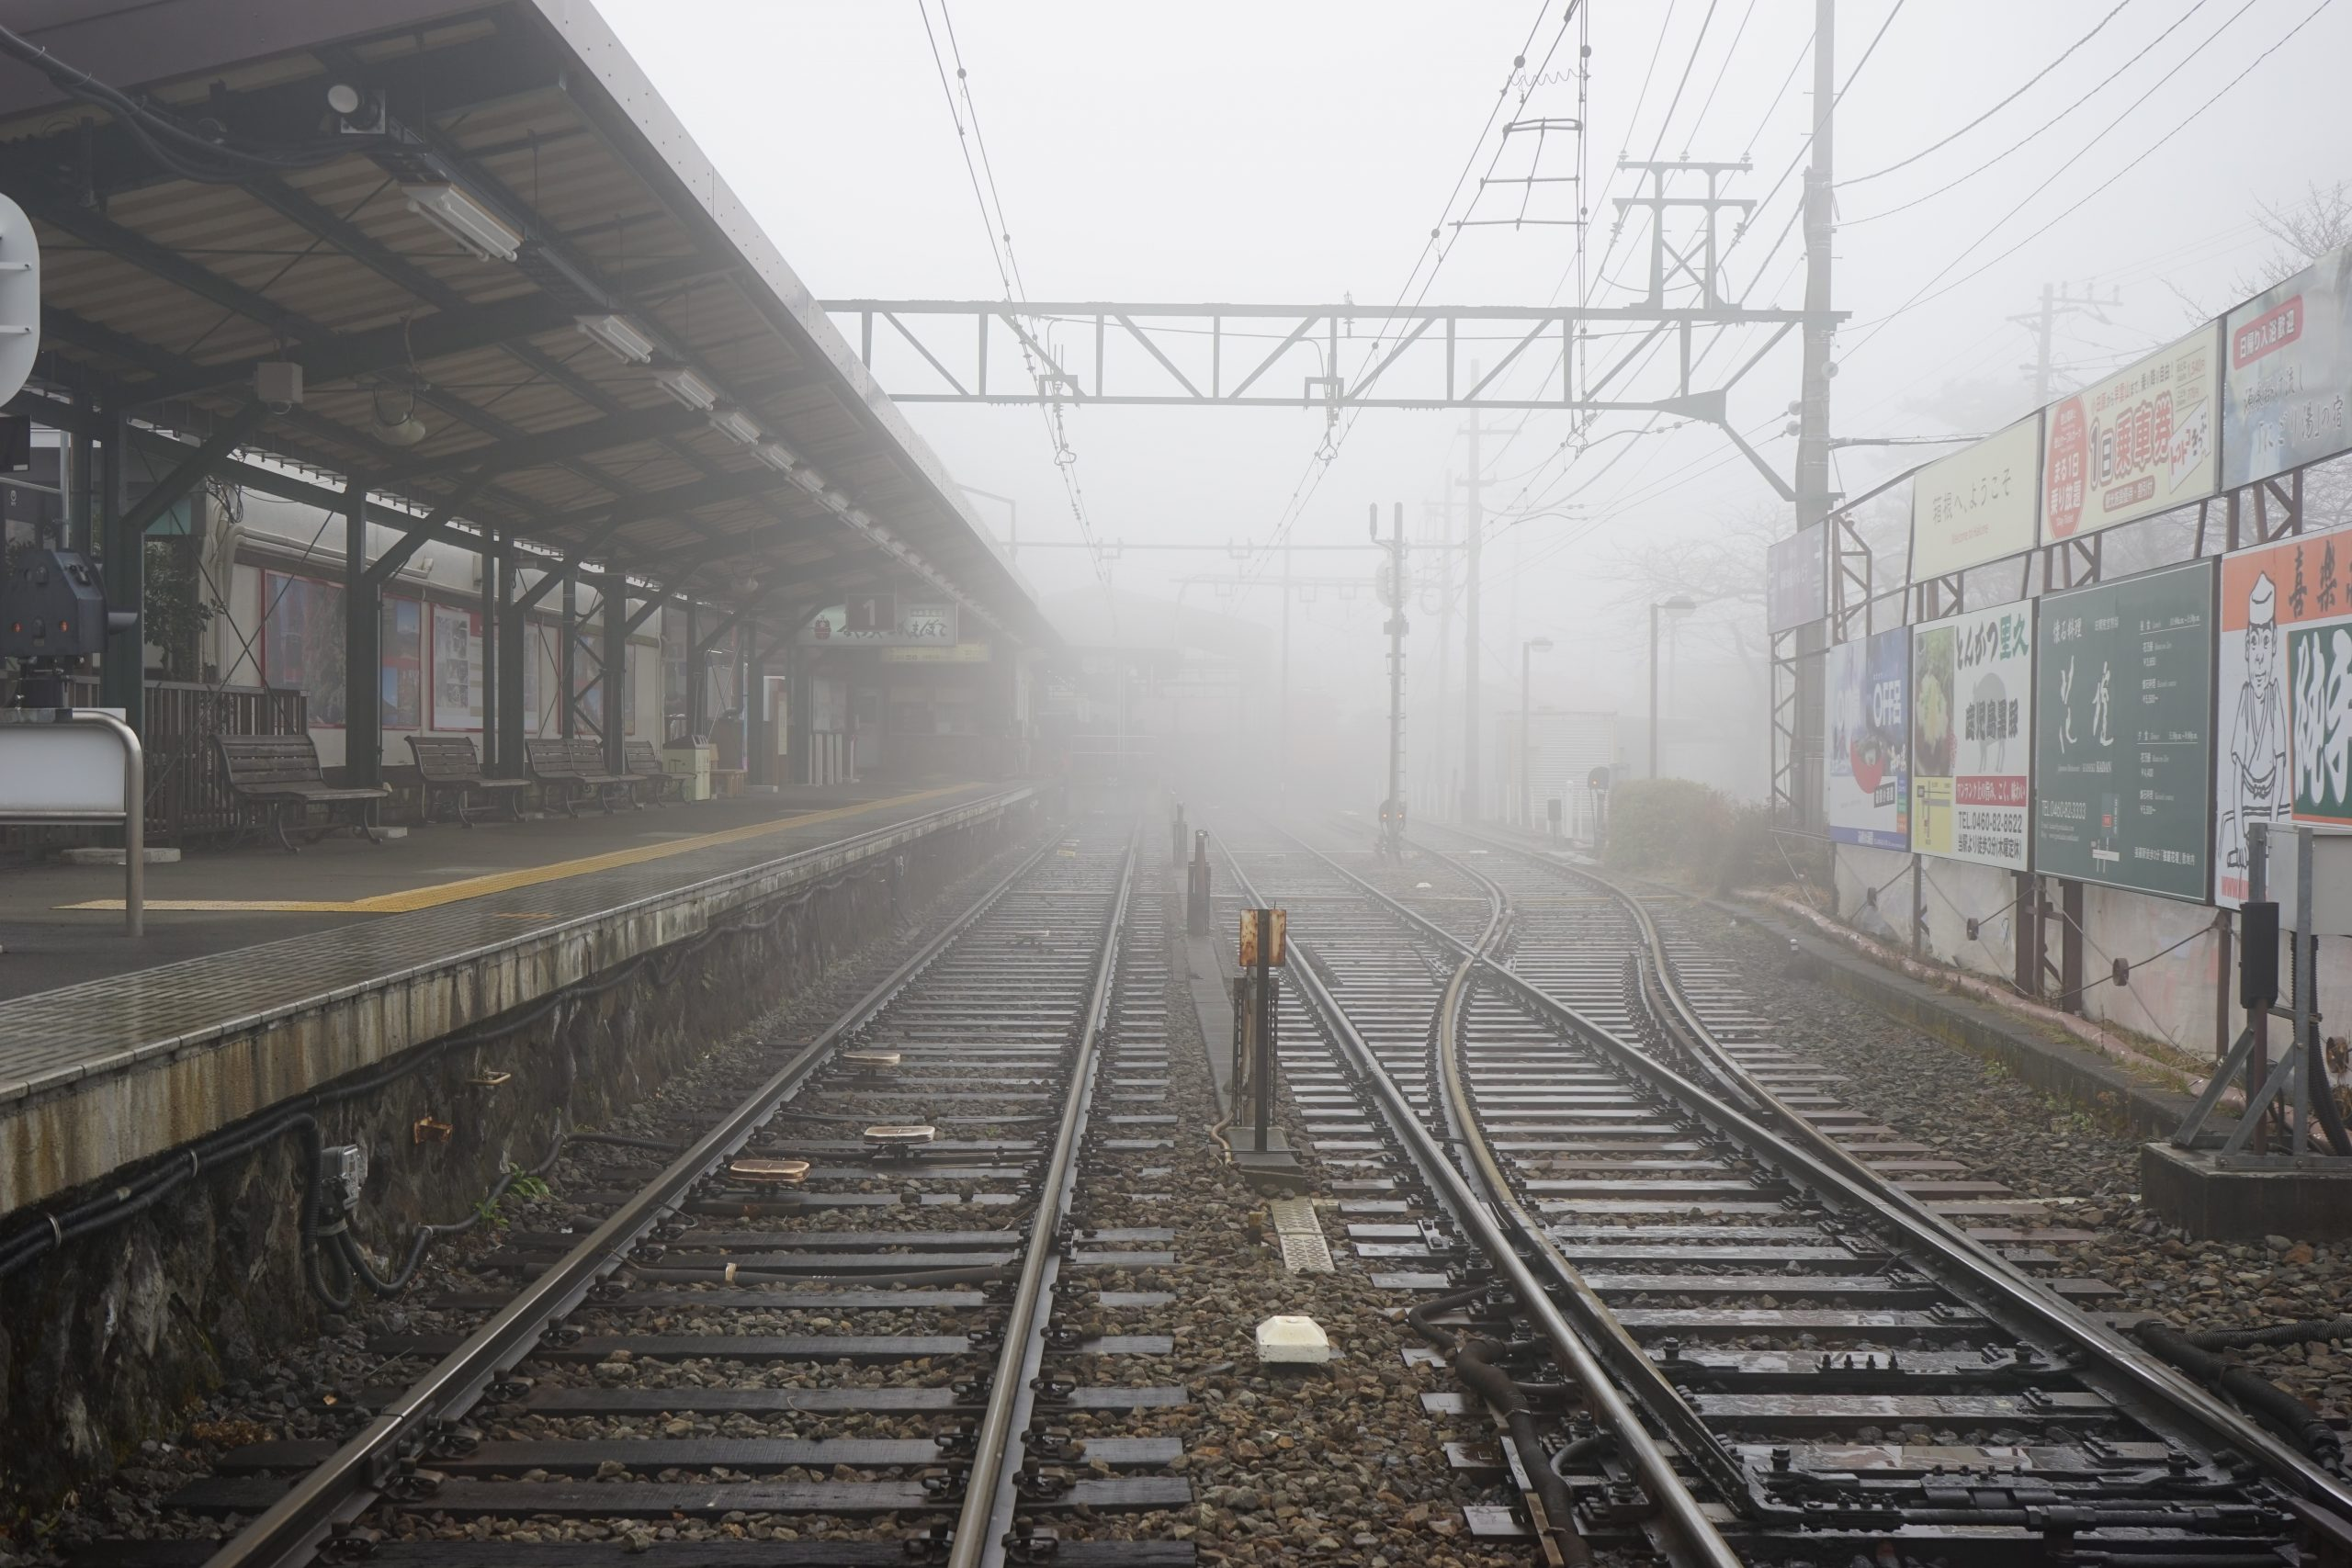 ben, smith, bensmith, doug, laux, douglaux, doug laux, ben smith, train, tracks, fog, foggy